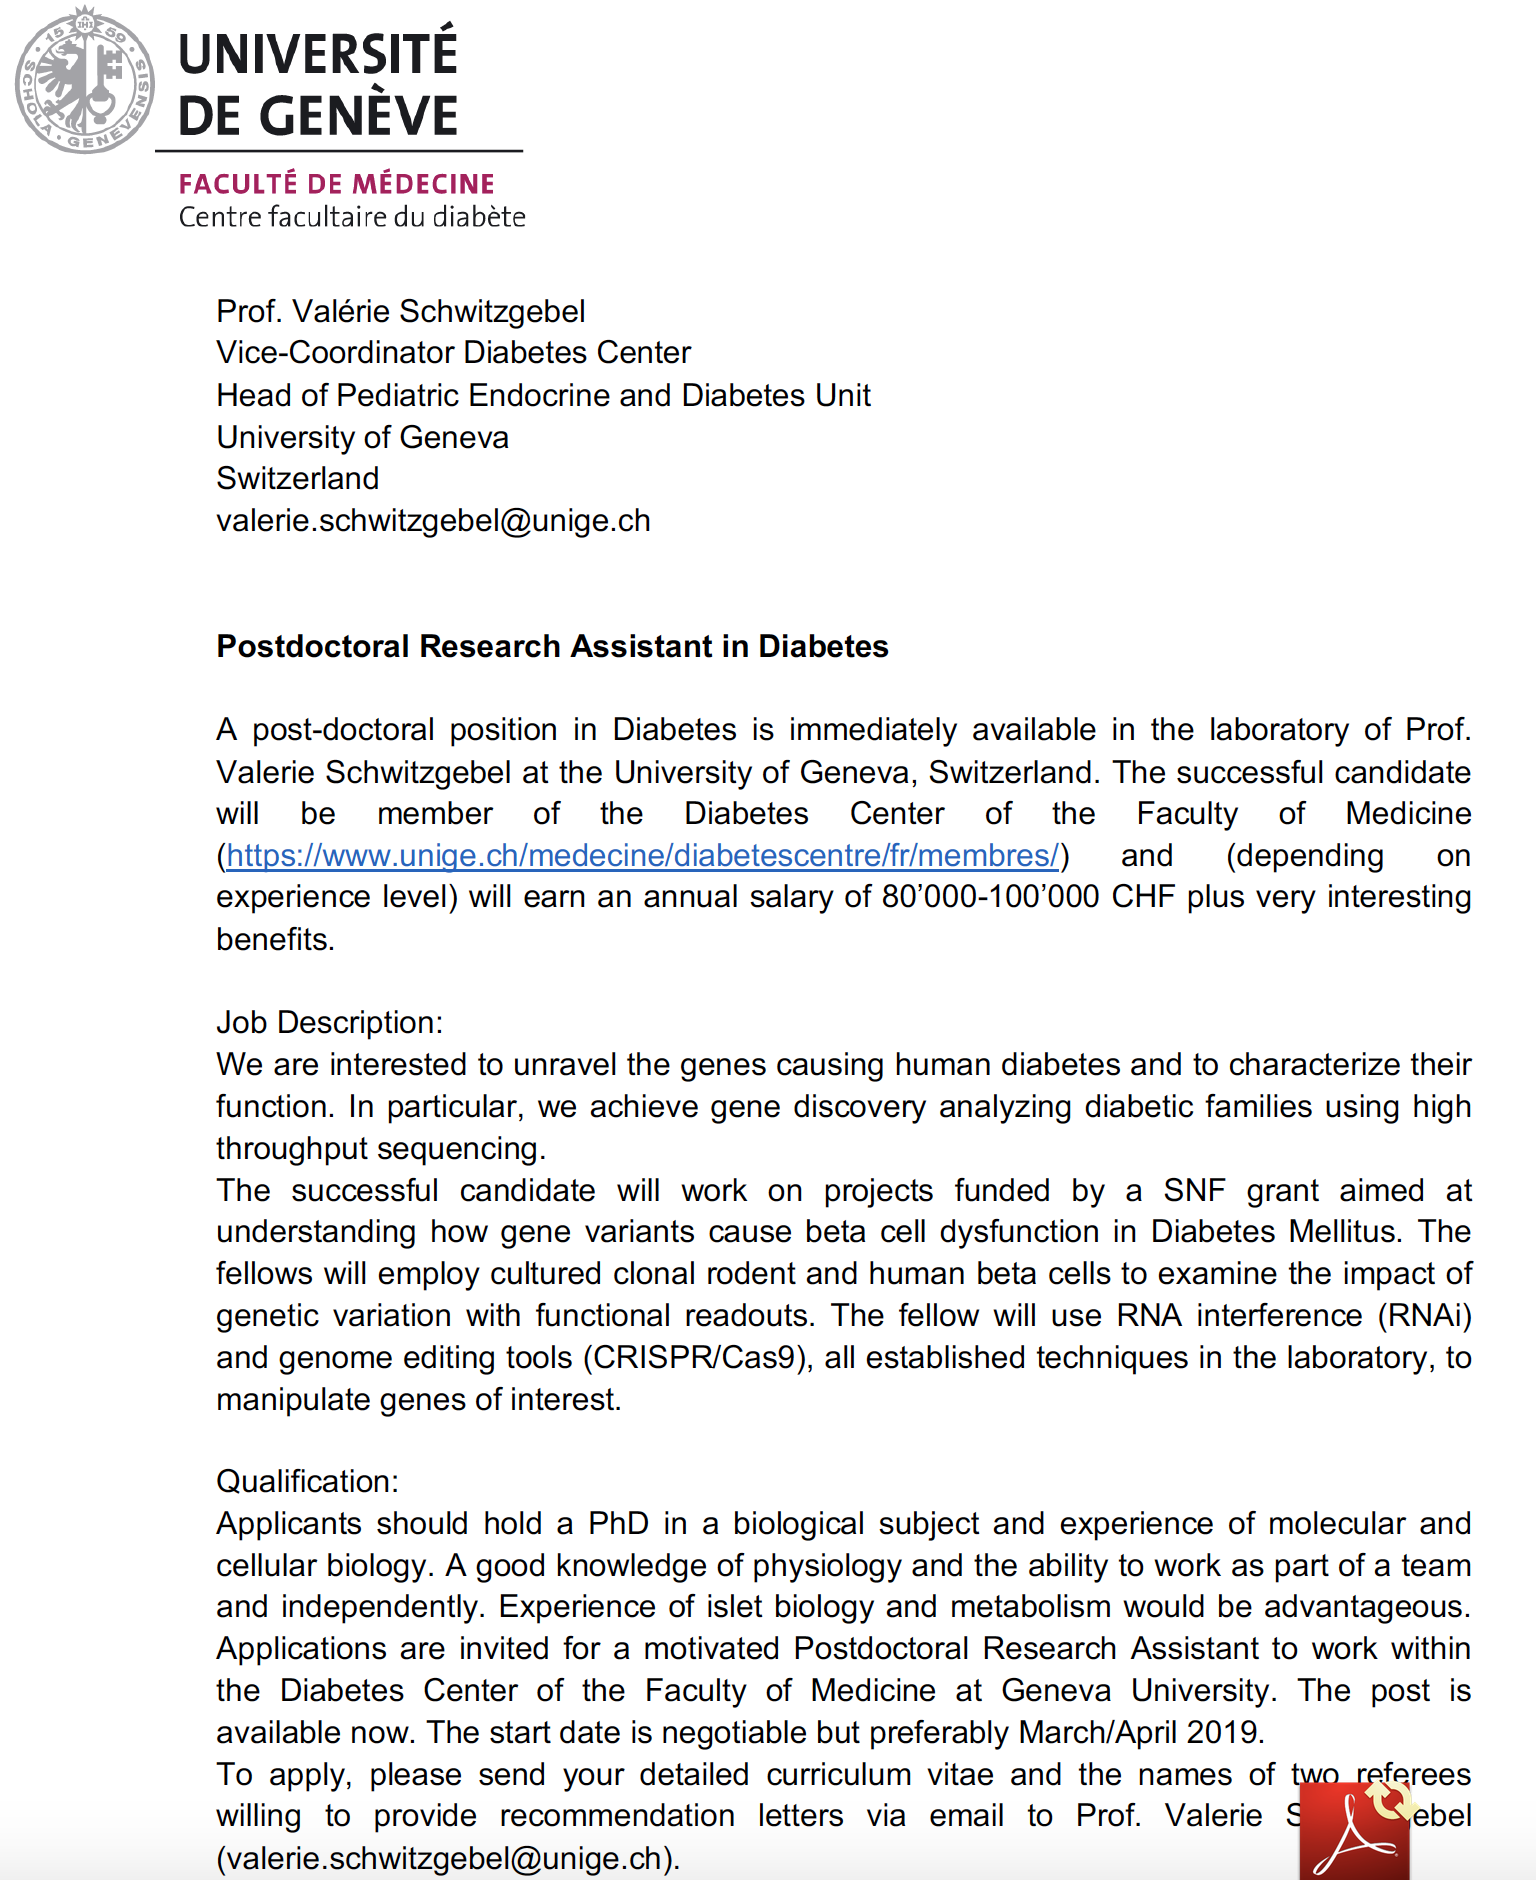 Post-doctoral fellow position available in Diabetes at the